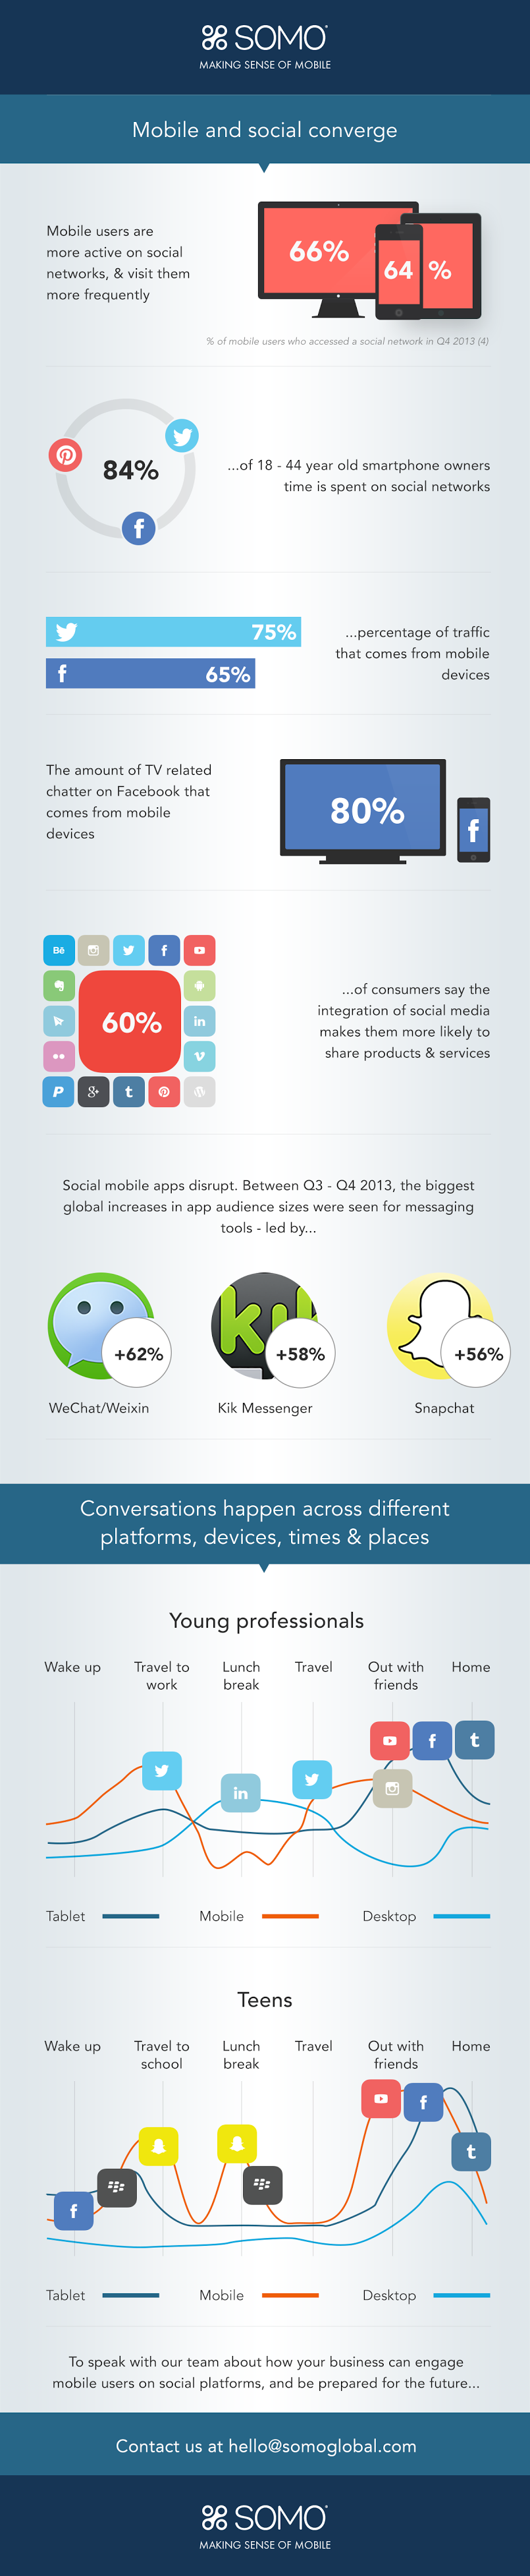 mobile-social-media-converge-infographic